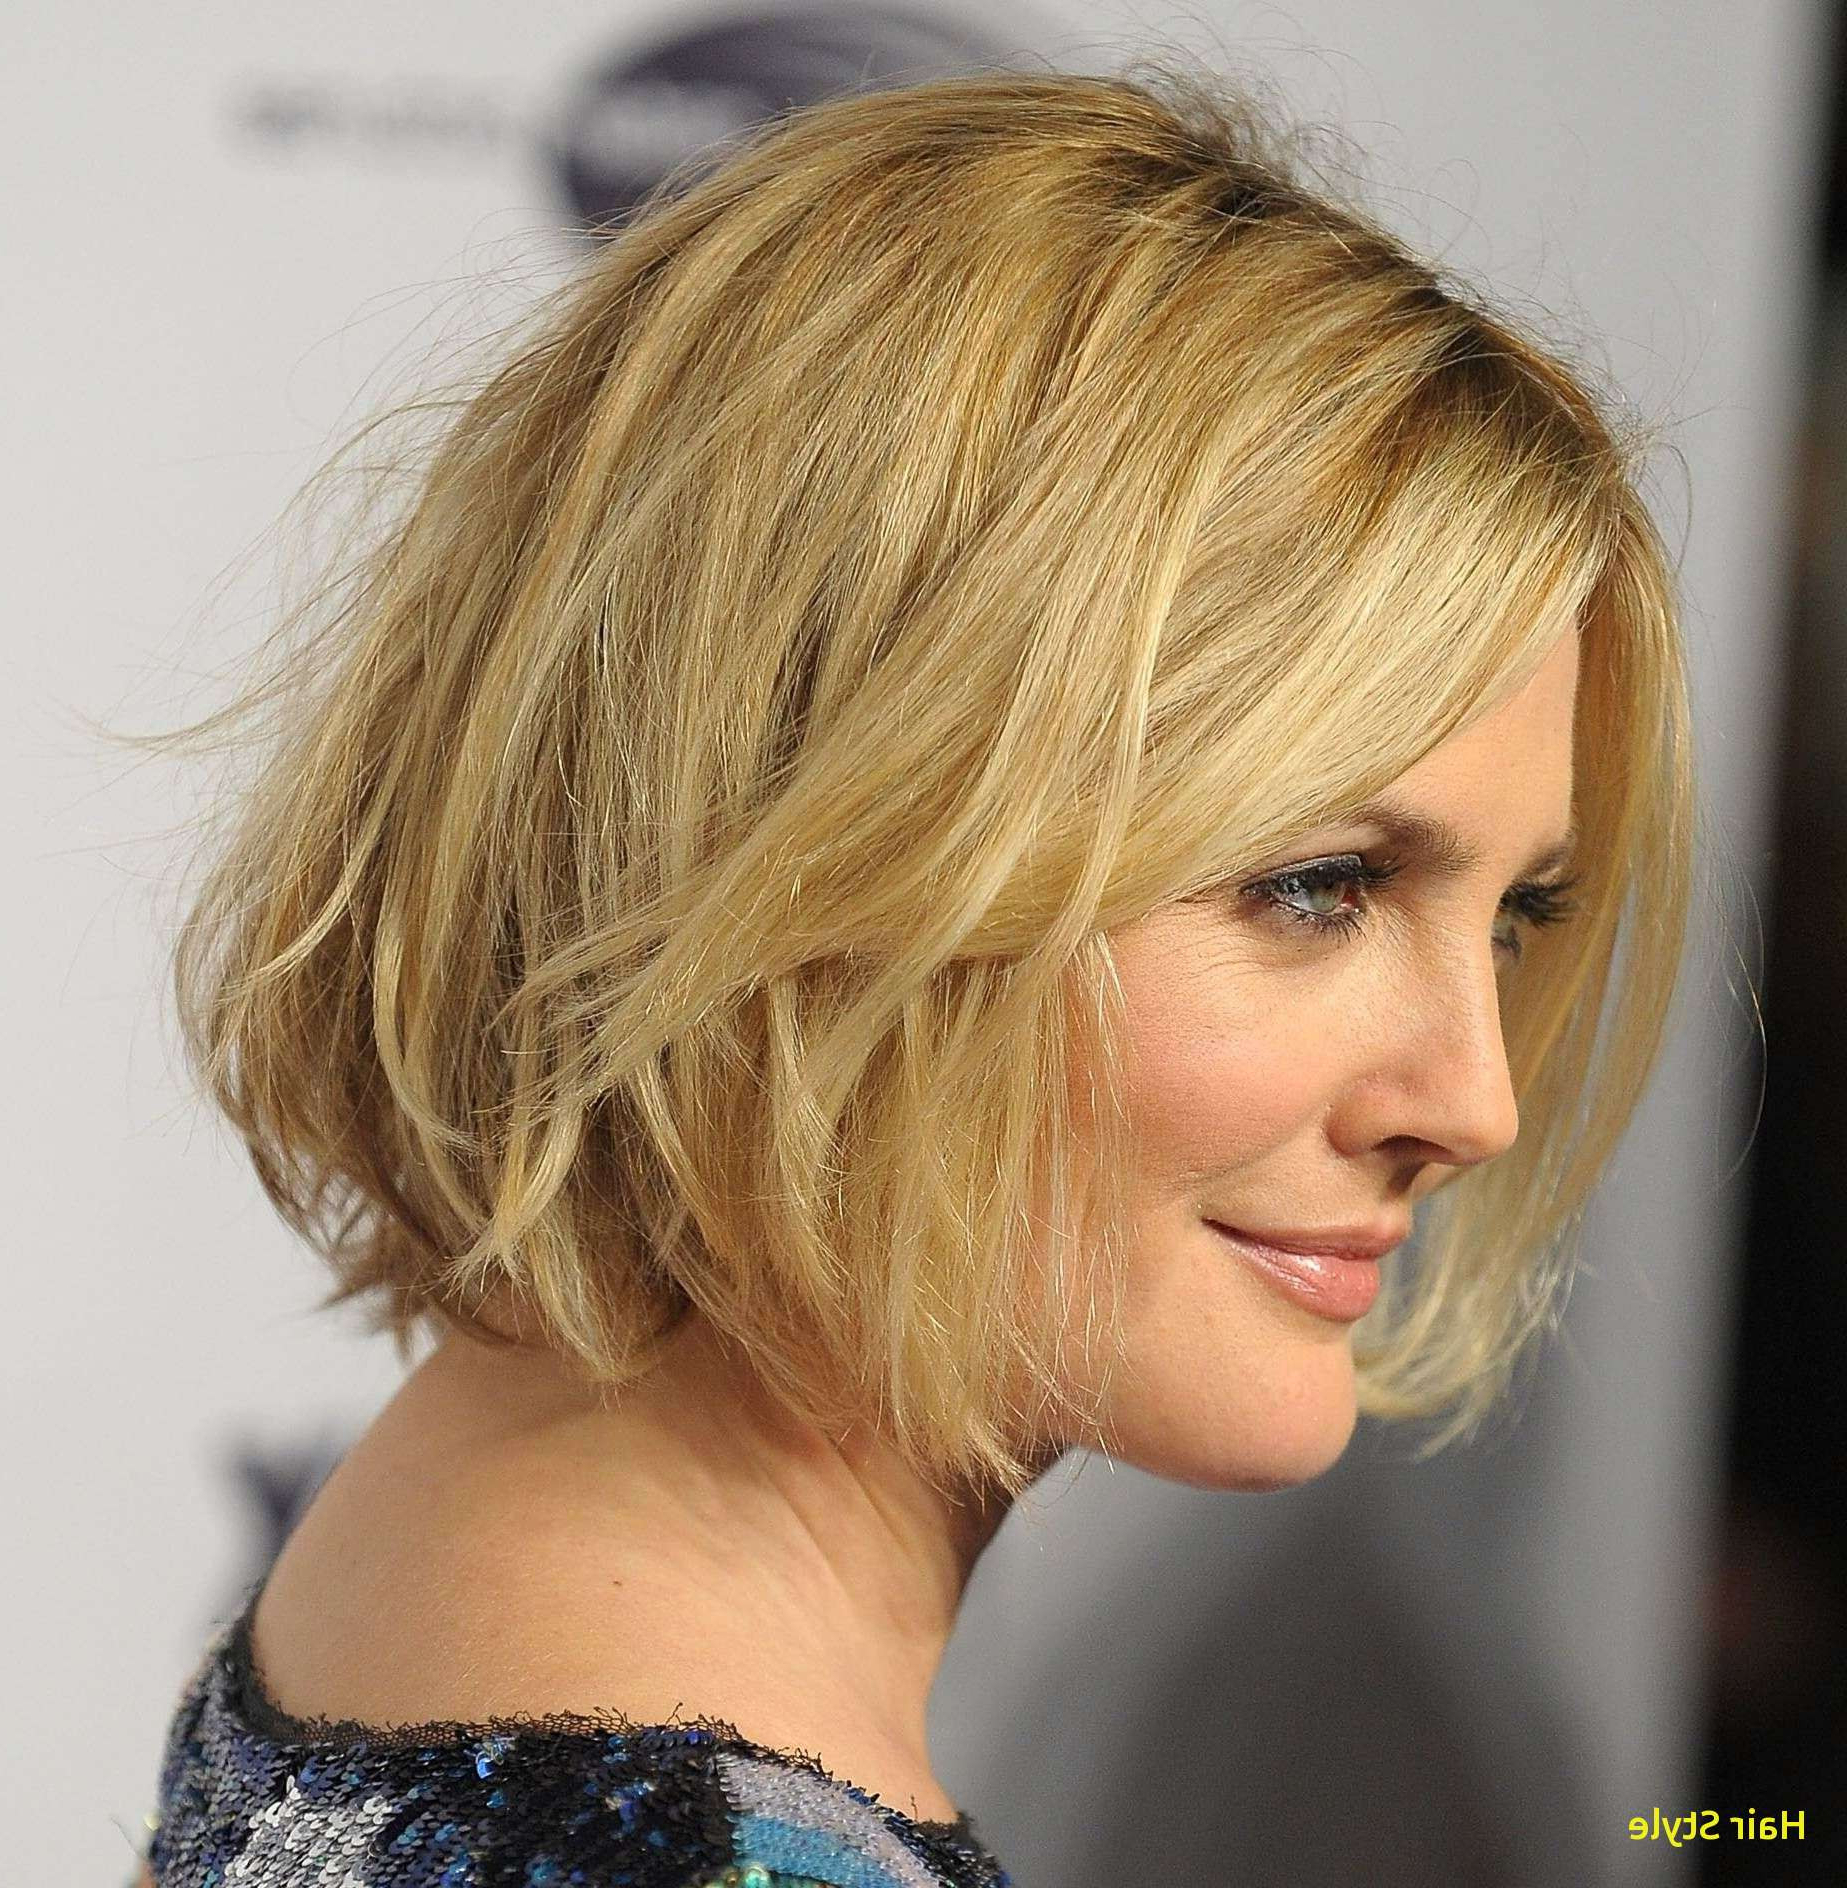 Drew Barrymore Short Hairstyles New Fresh Short Bob Hairstyles 2016 With Drew Barrymore Short Haircuts (Gallery 11 of 25)